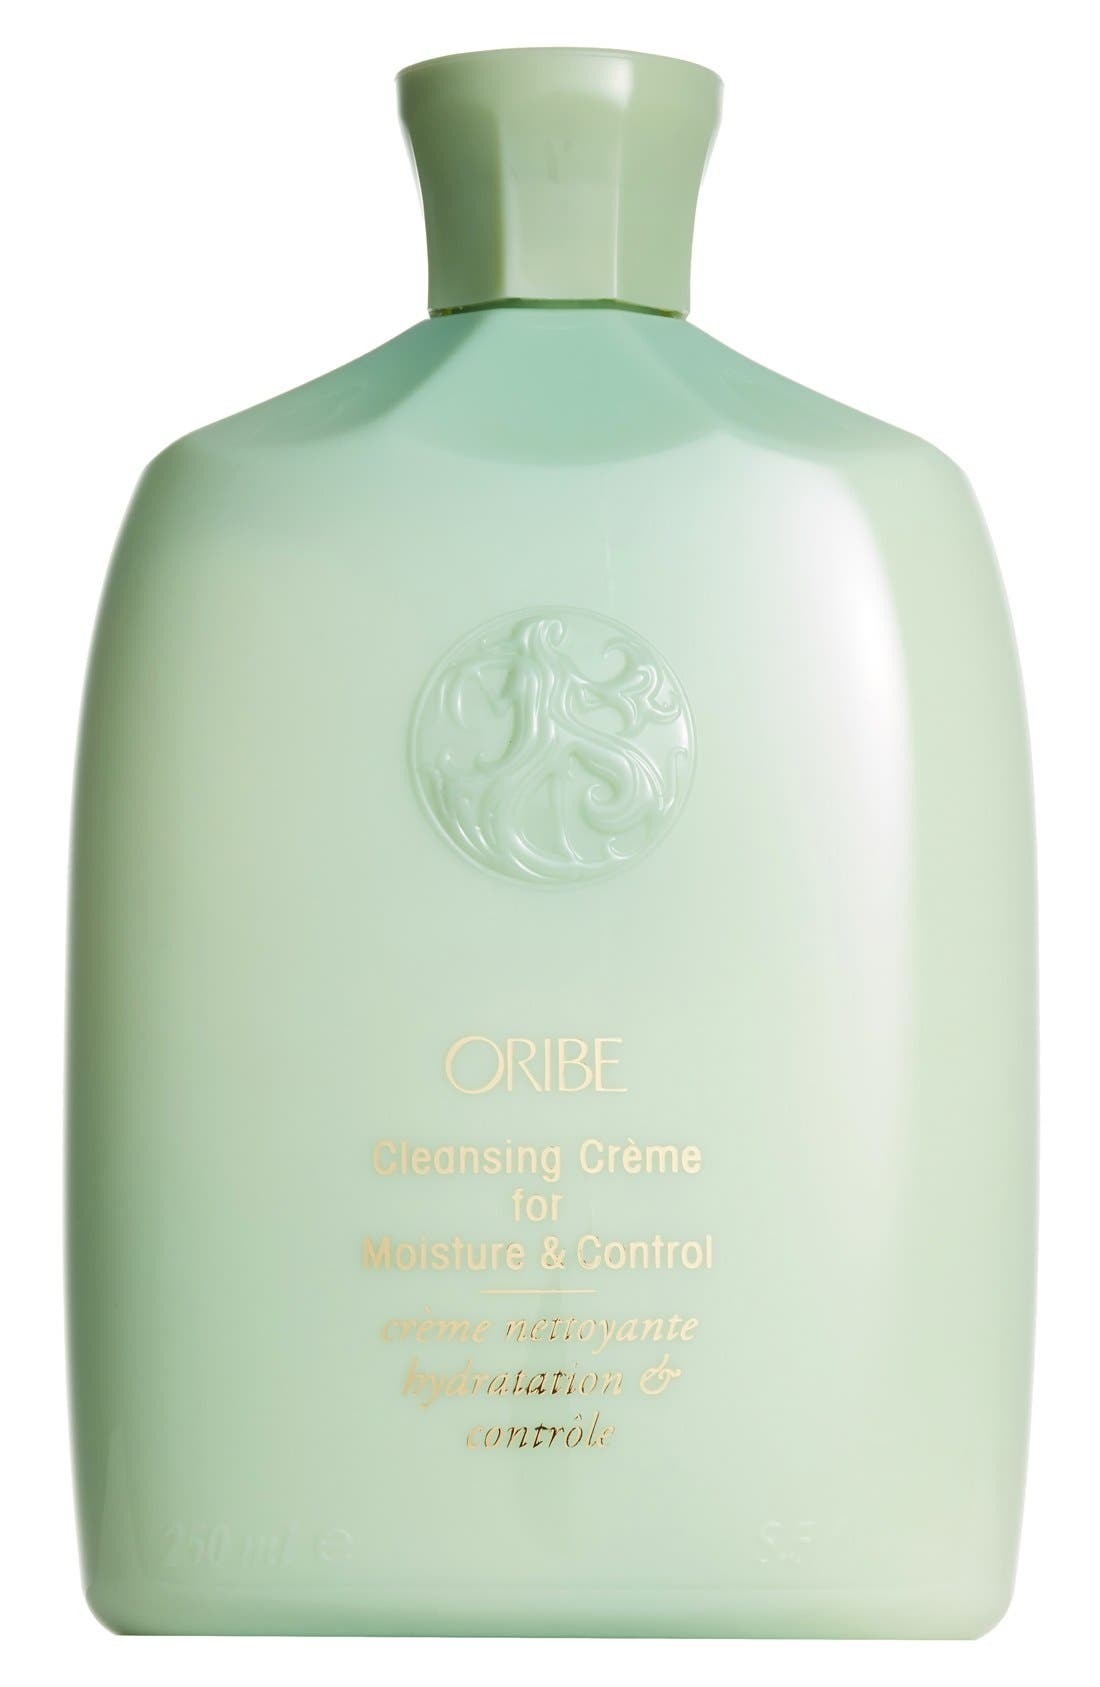 ORIBE SPACE.NK.apothecary Oribe Cleansing Creme for Moisture & Control, Main, color, NO COLOR